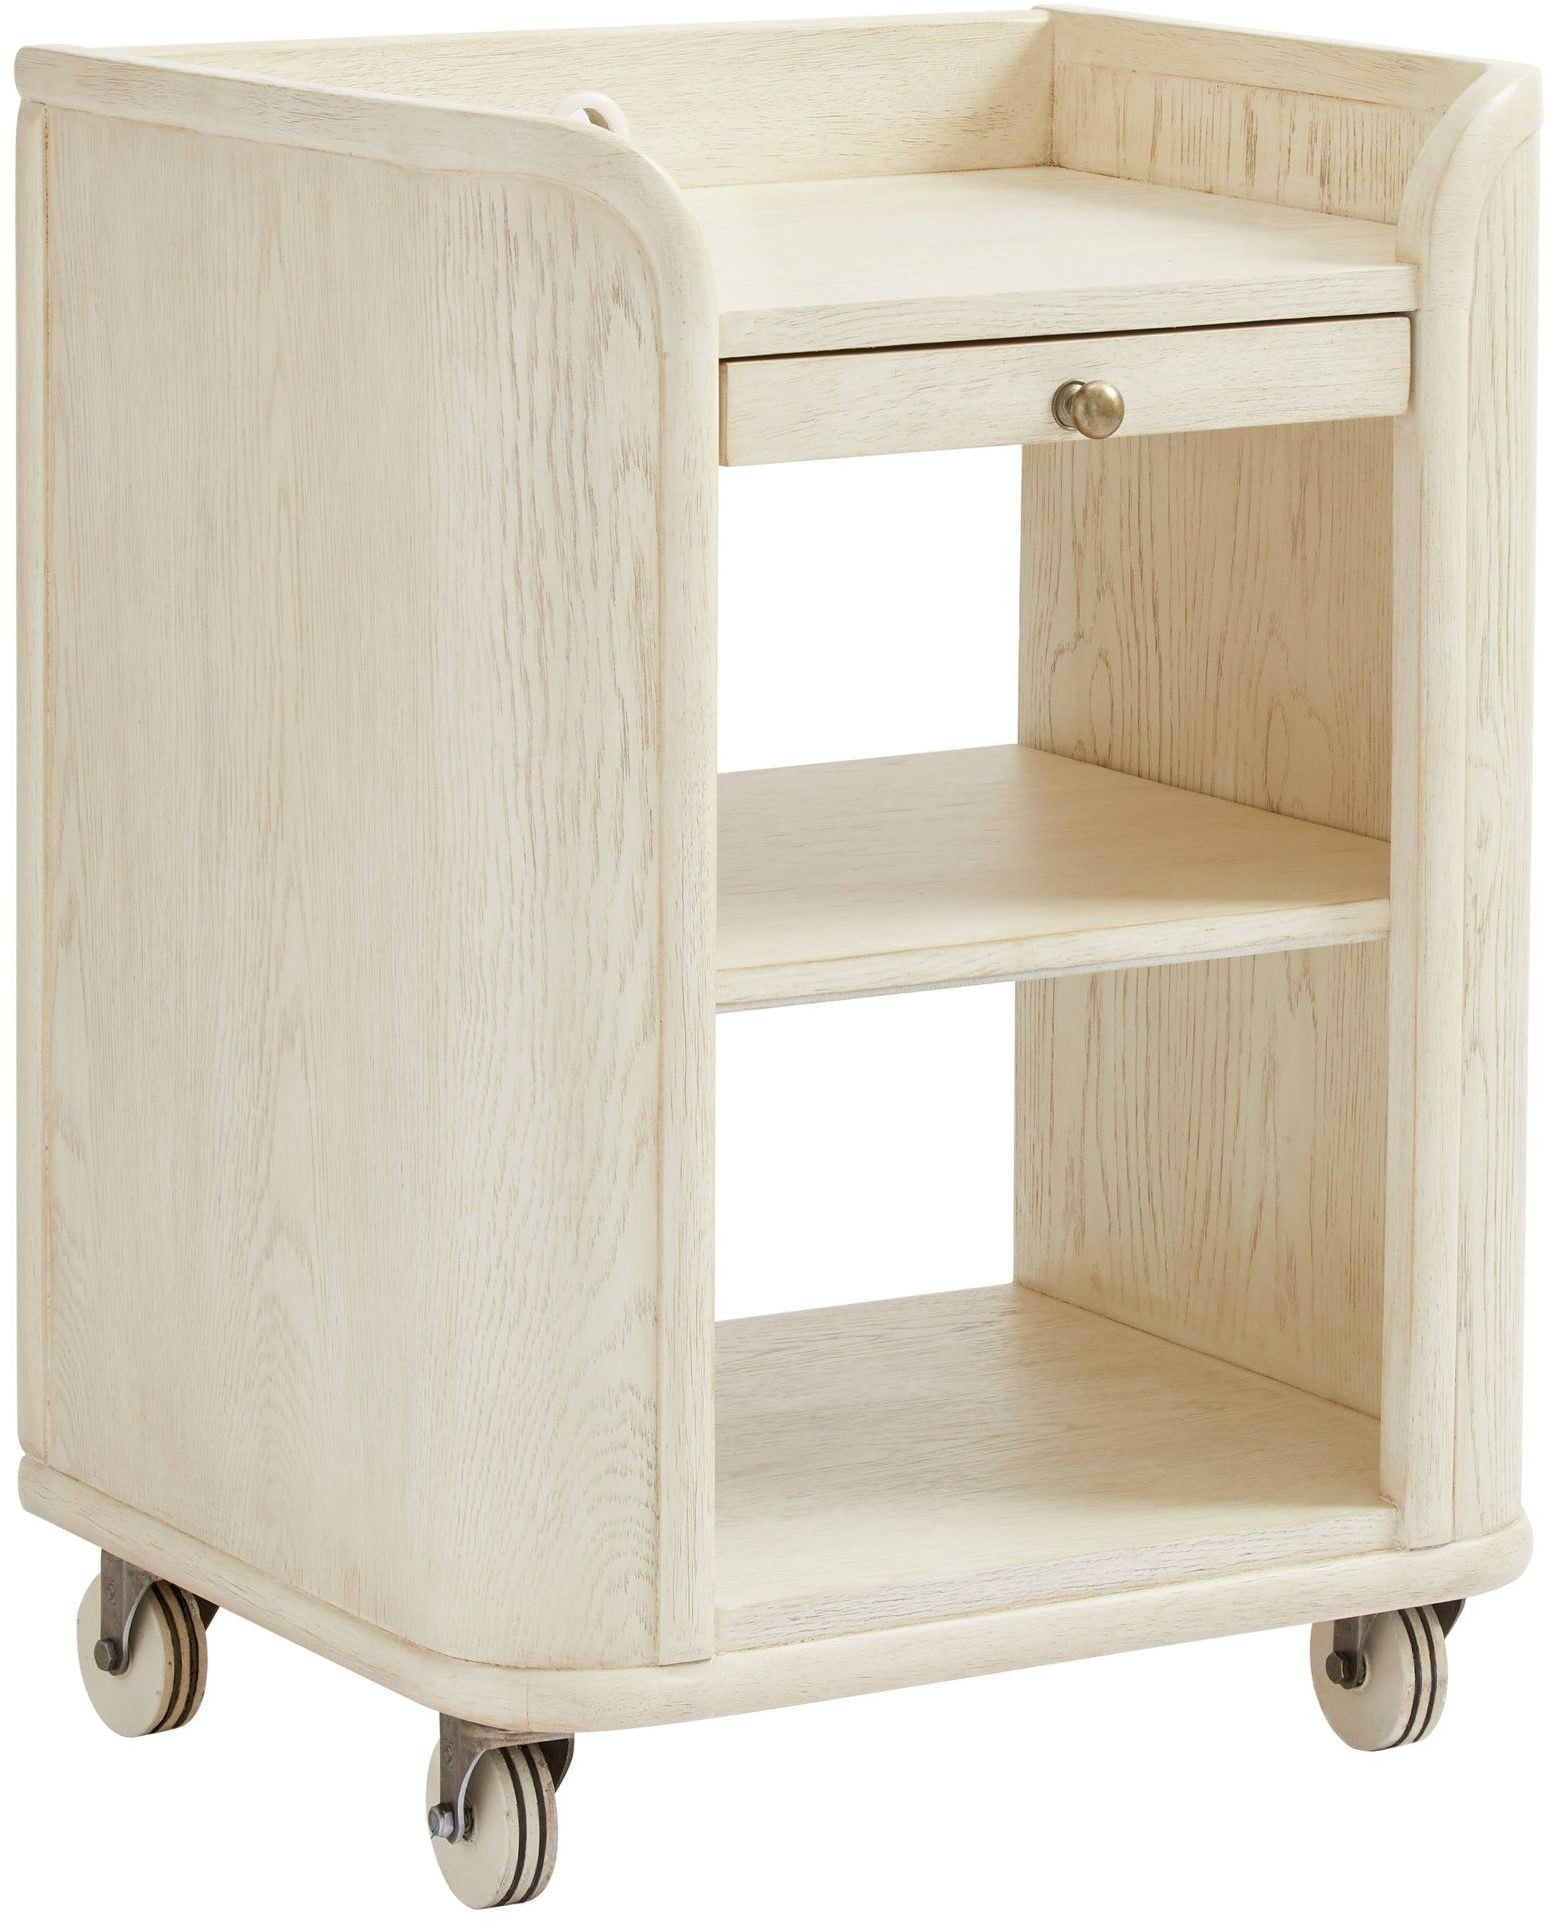 driftwood park vanilla oak bedside storage table from stone and leigh coleman furniture. Black Bedroom Furniture Sets. Home Design Ideas